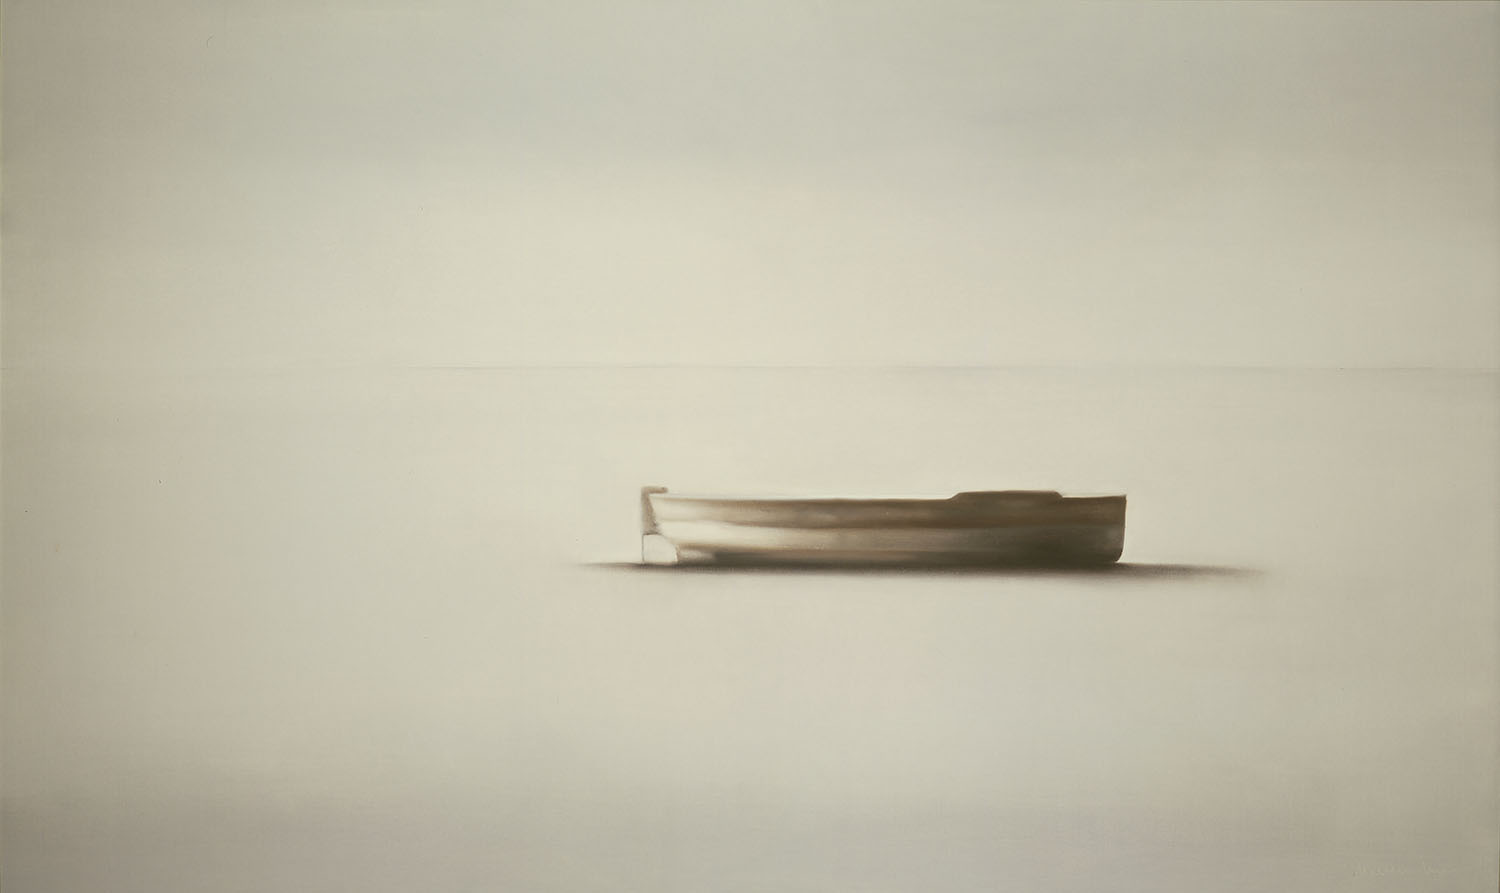 Boat, 1986, oil on canvas, cm 97 x 160